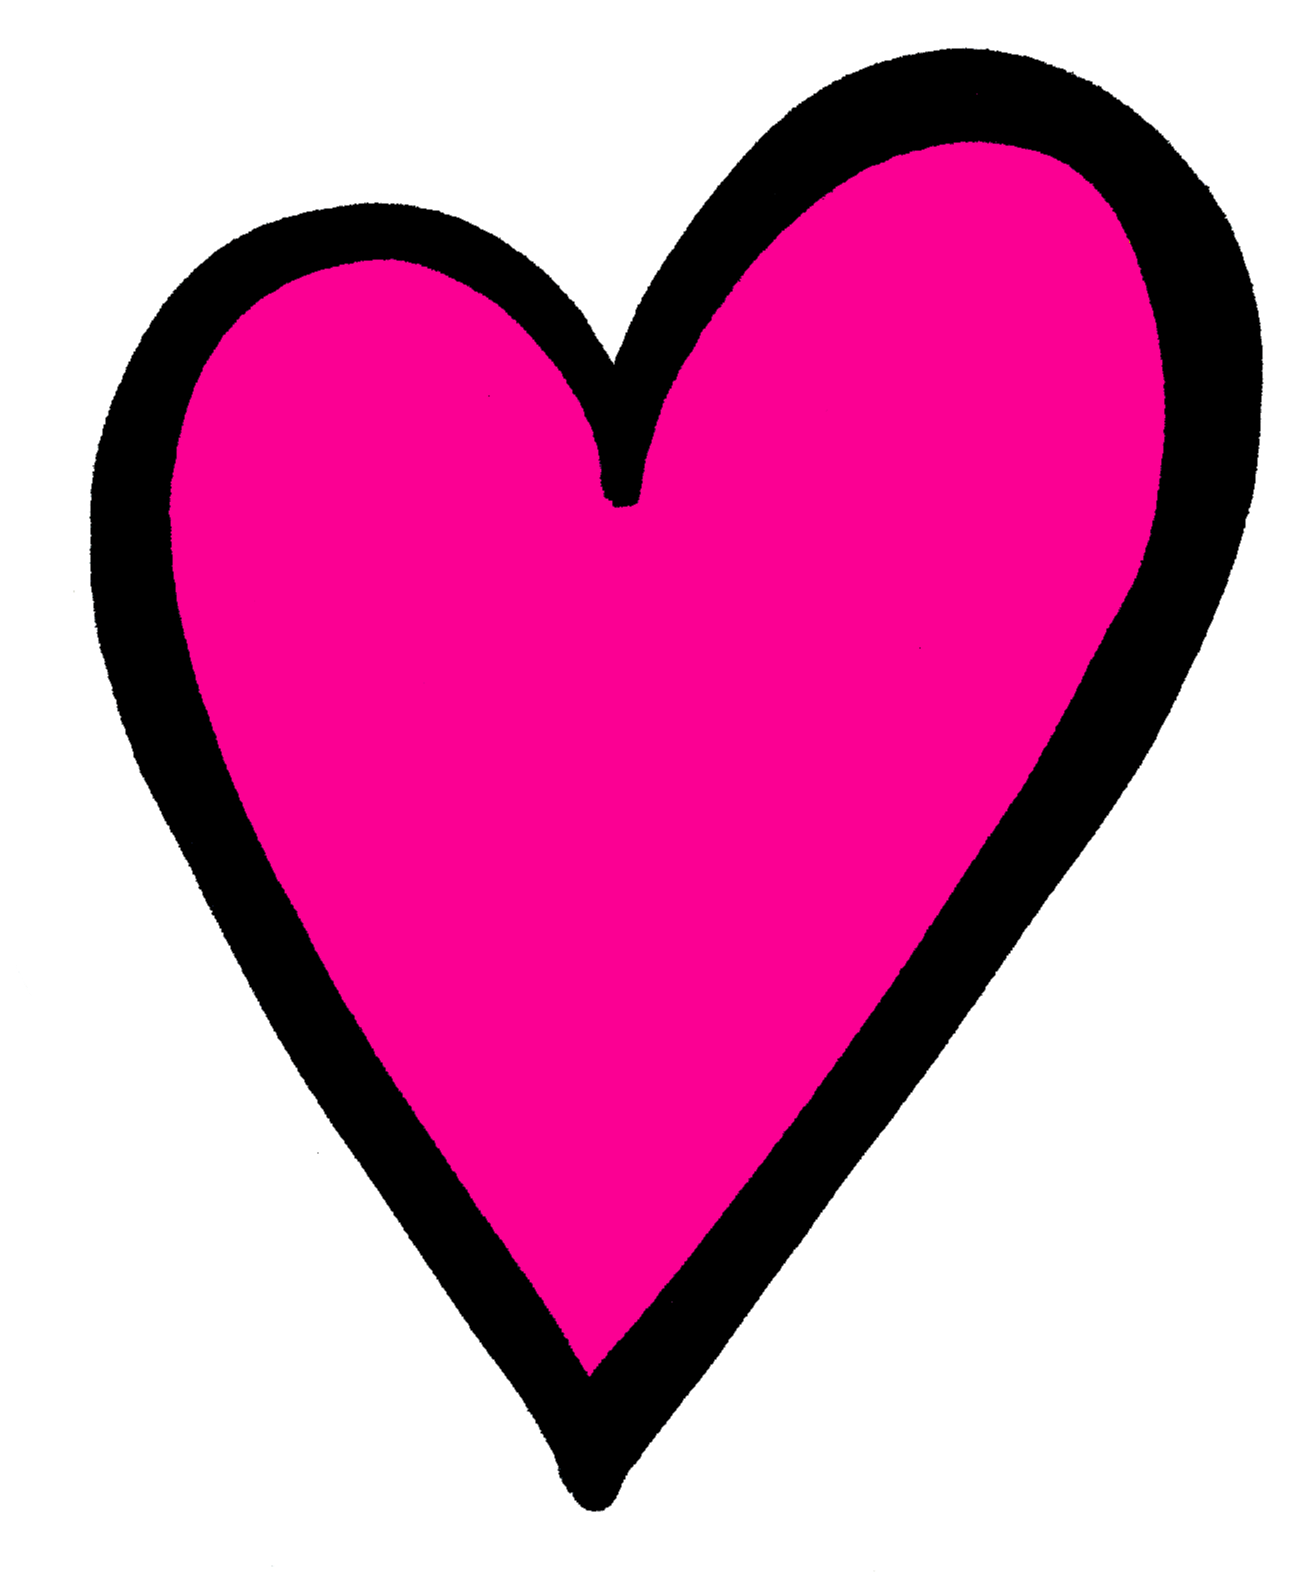 Hot pink heart clipart clip black and white stock Pin by Lori Bechtel on Creative Clips Clipart | Pinterest | Hot pink ... clip black and white stock